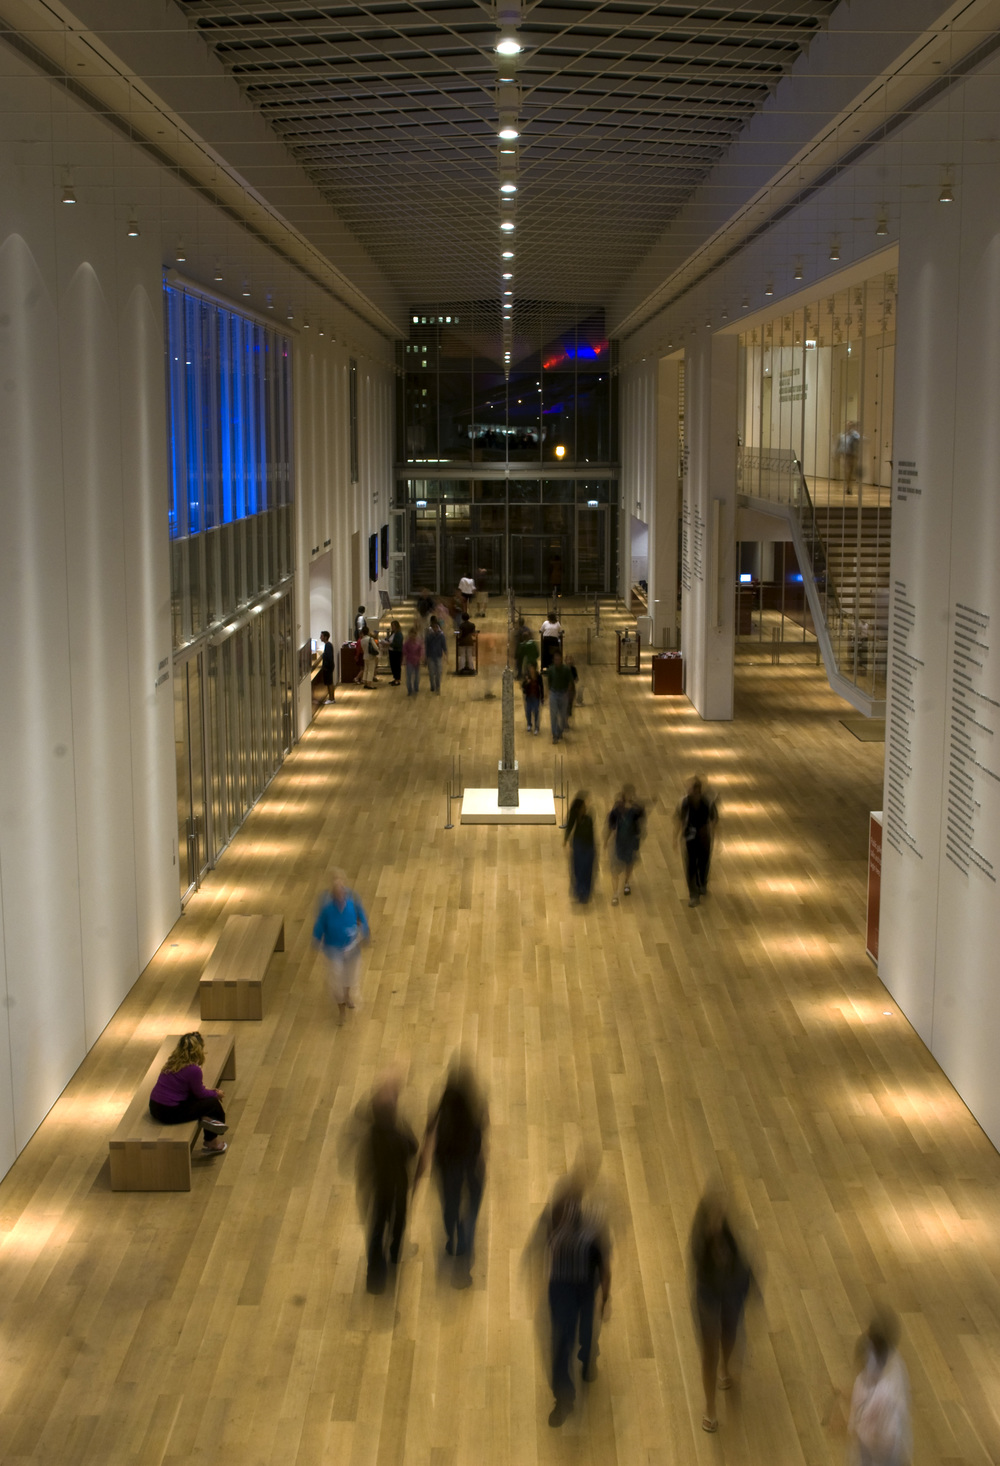 The interior of Renzo Piano's Modern Wing at the Art Institute of Chicago.